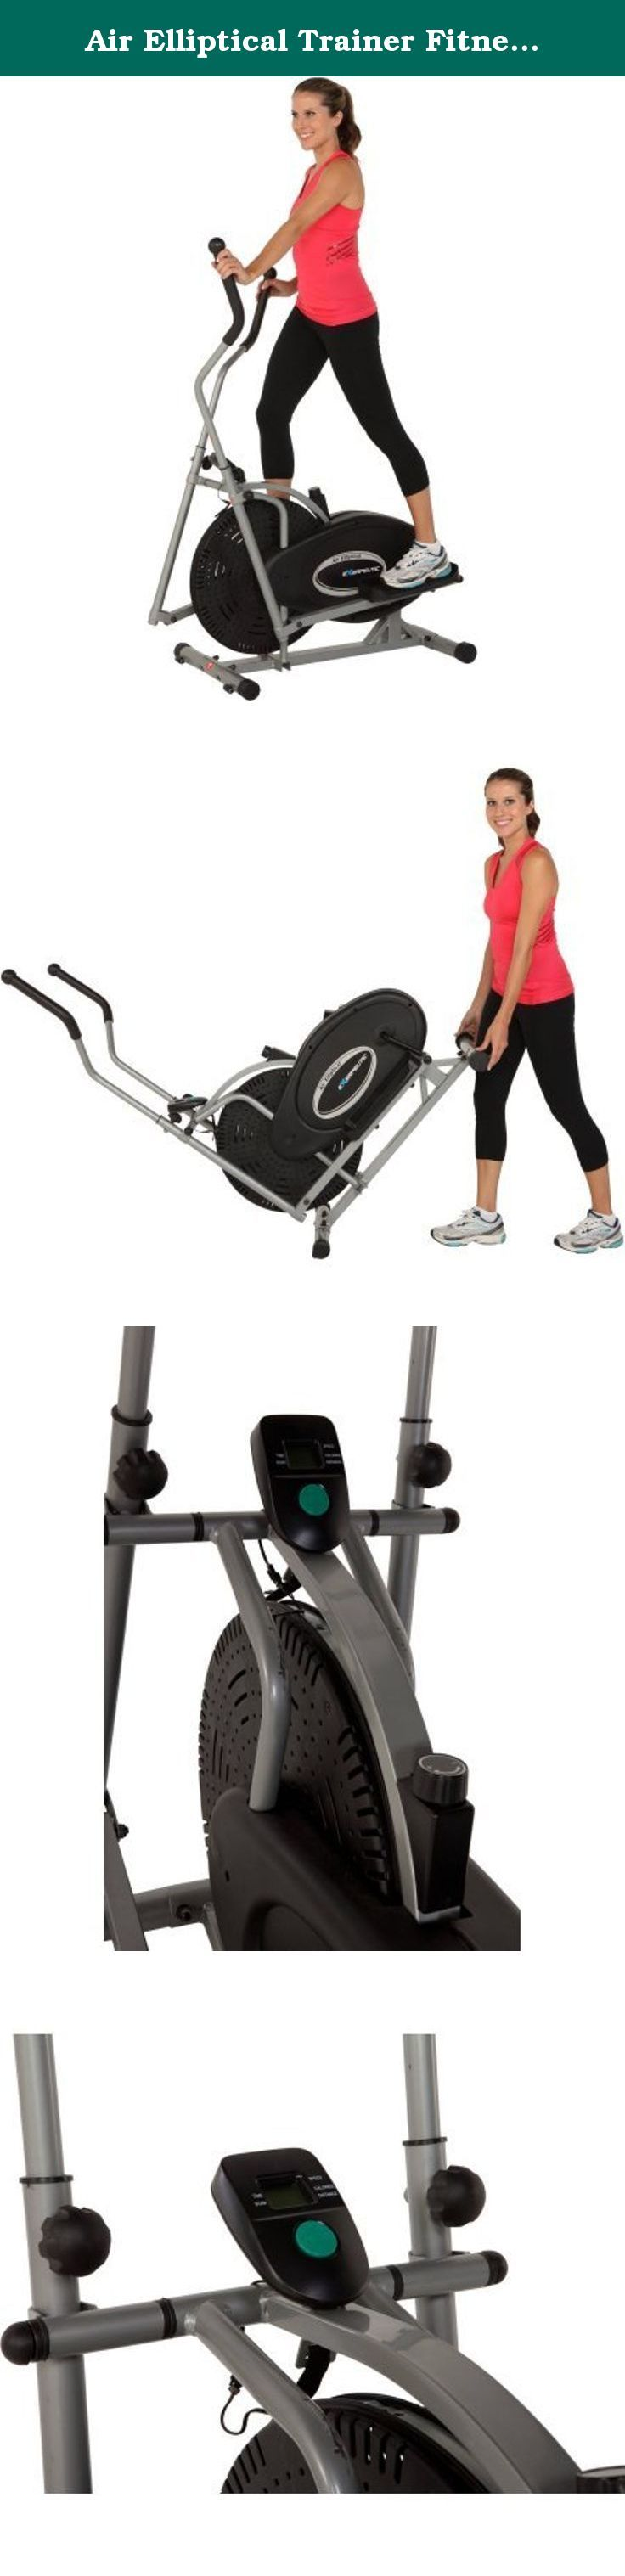 Air Elliptical Trainer Fitness Exercise Cardio Workout Training Home Gym Equipment Natural Elliptical Motion Eliminates Stress on Joints Ankles, Tension Resistance Adjustment User Weight Up to 220 lbs. Natural Elliptical Motion eliminates any stress on joints and ankles Weight capacity: up to 220 lbs Tension resistance: easy dial tension adjustment for a more challenging workout An easy-to-read LCD screen indicates distance, calories burned, elapsed time and speed Larger pedal design with...